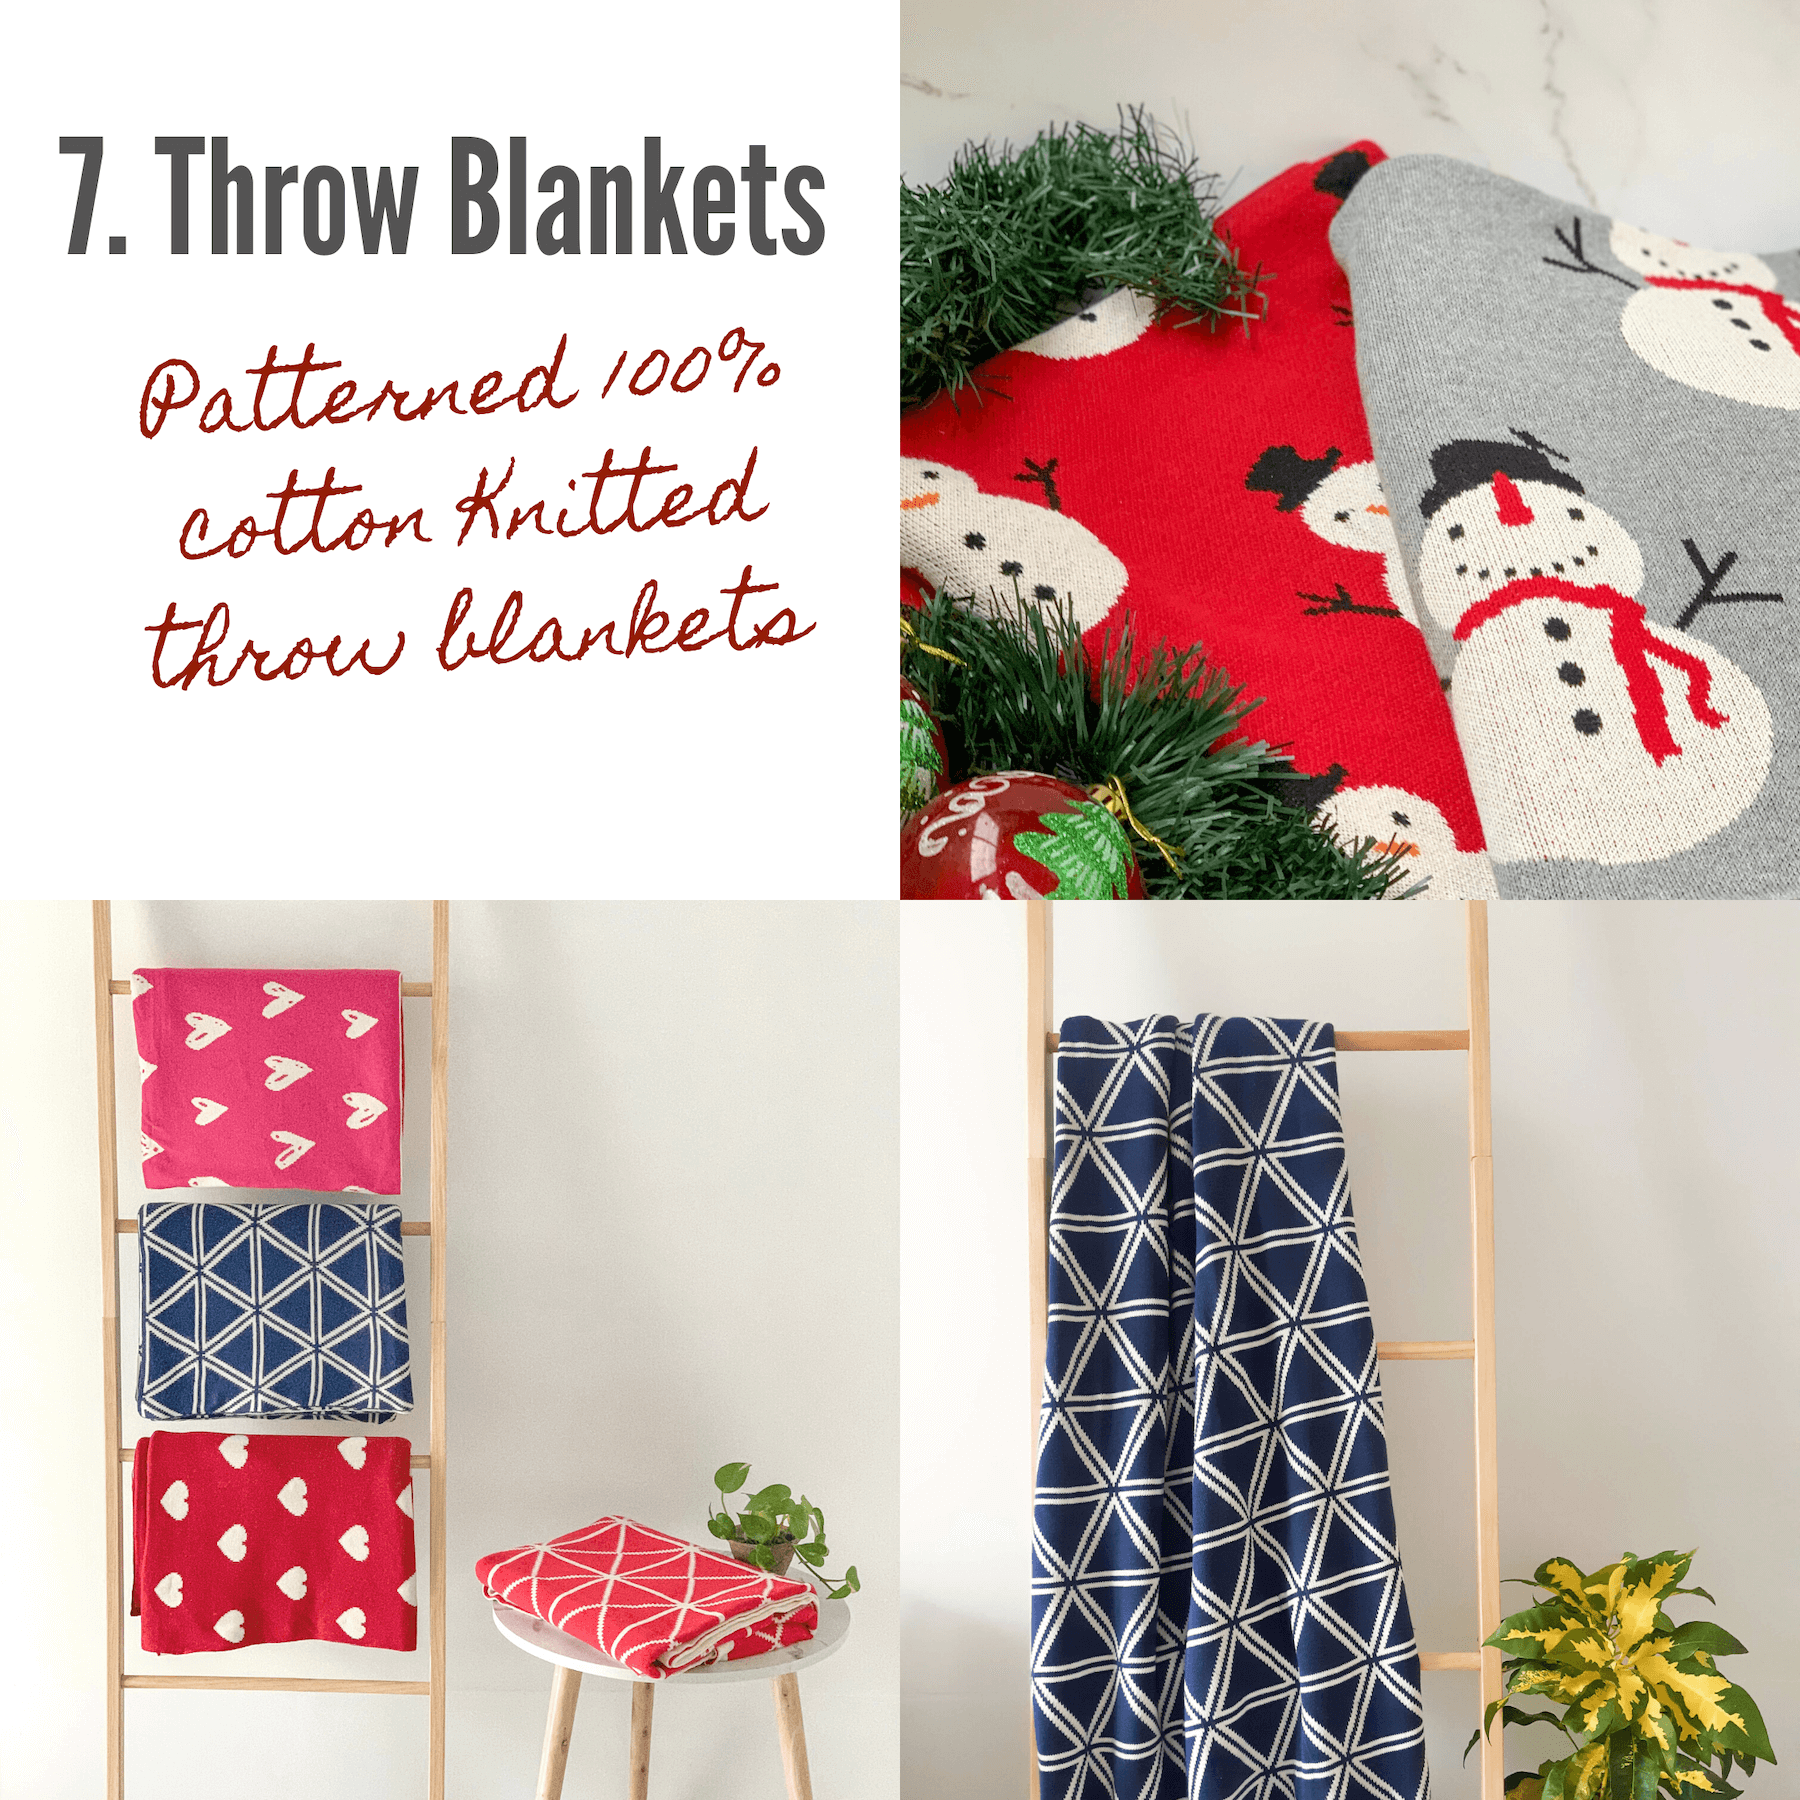 100% cotton throw blankets festive gift guide holiday gifting ideas